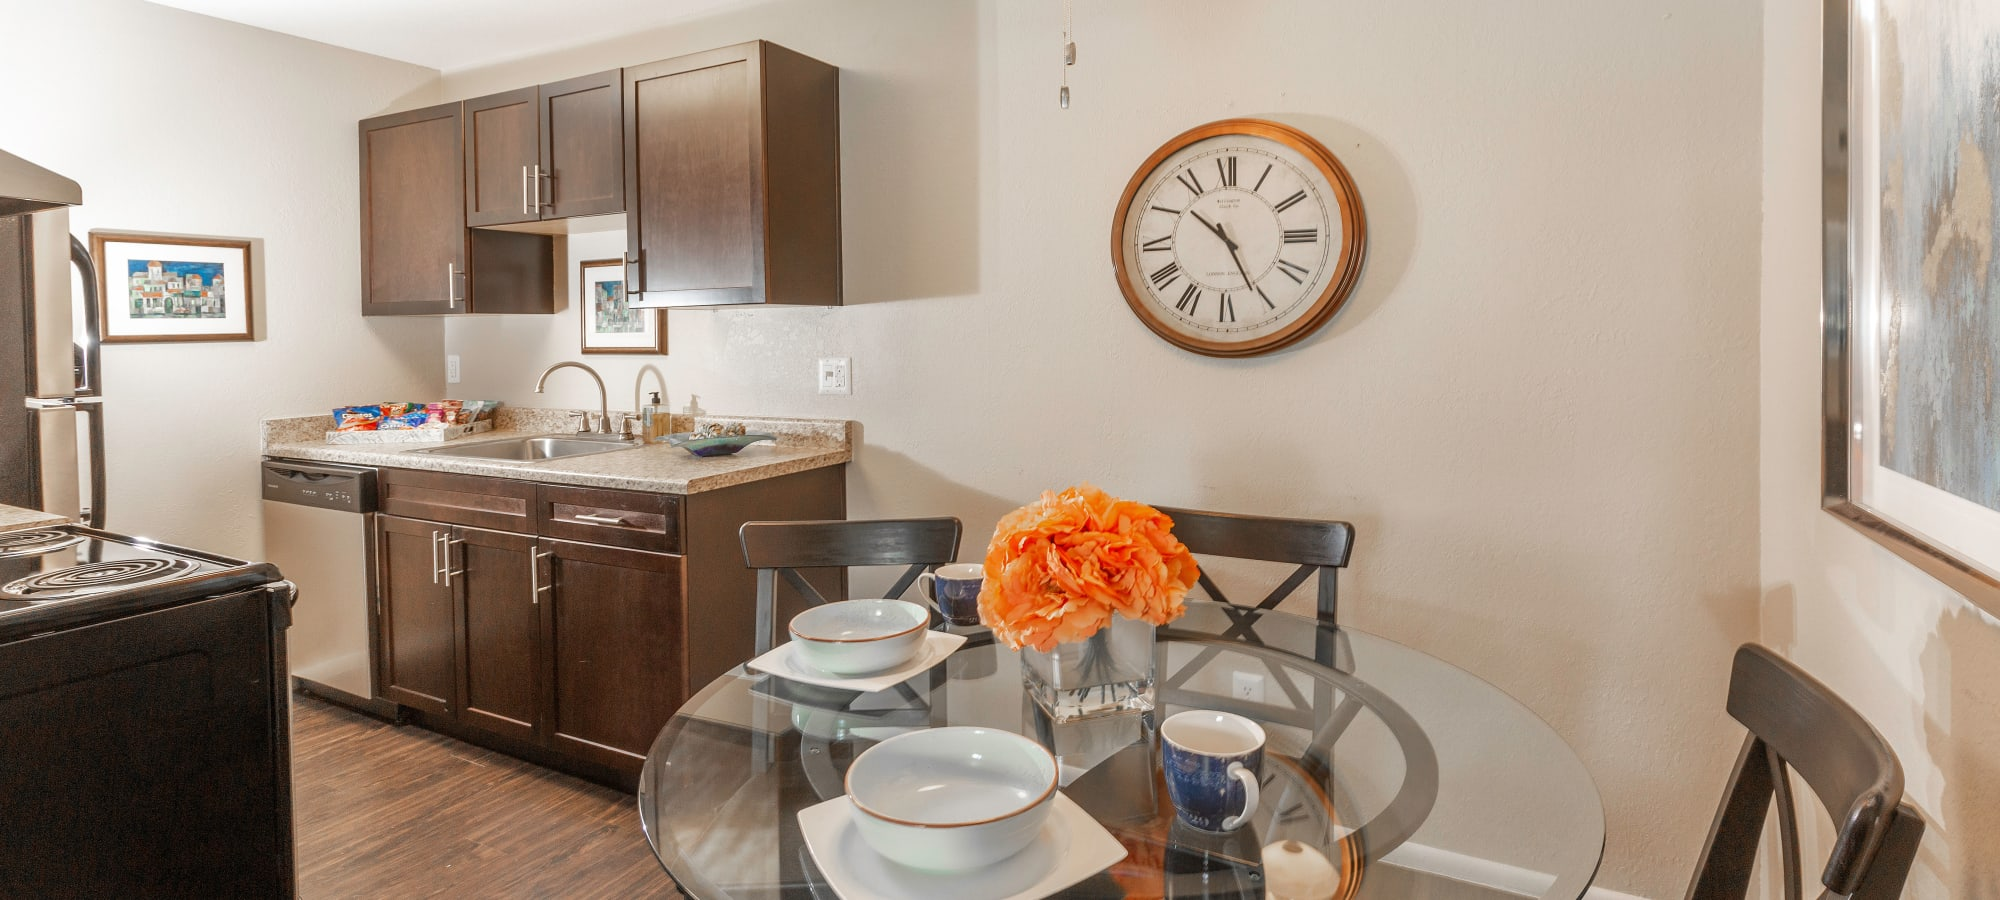 Apartments from Callaway Apartments in Taylorsville, Utah